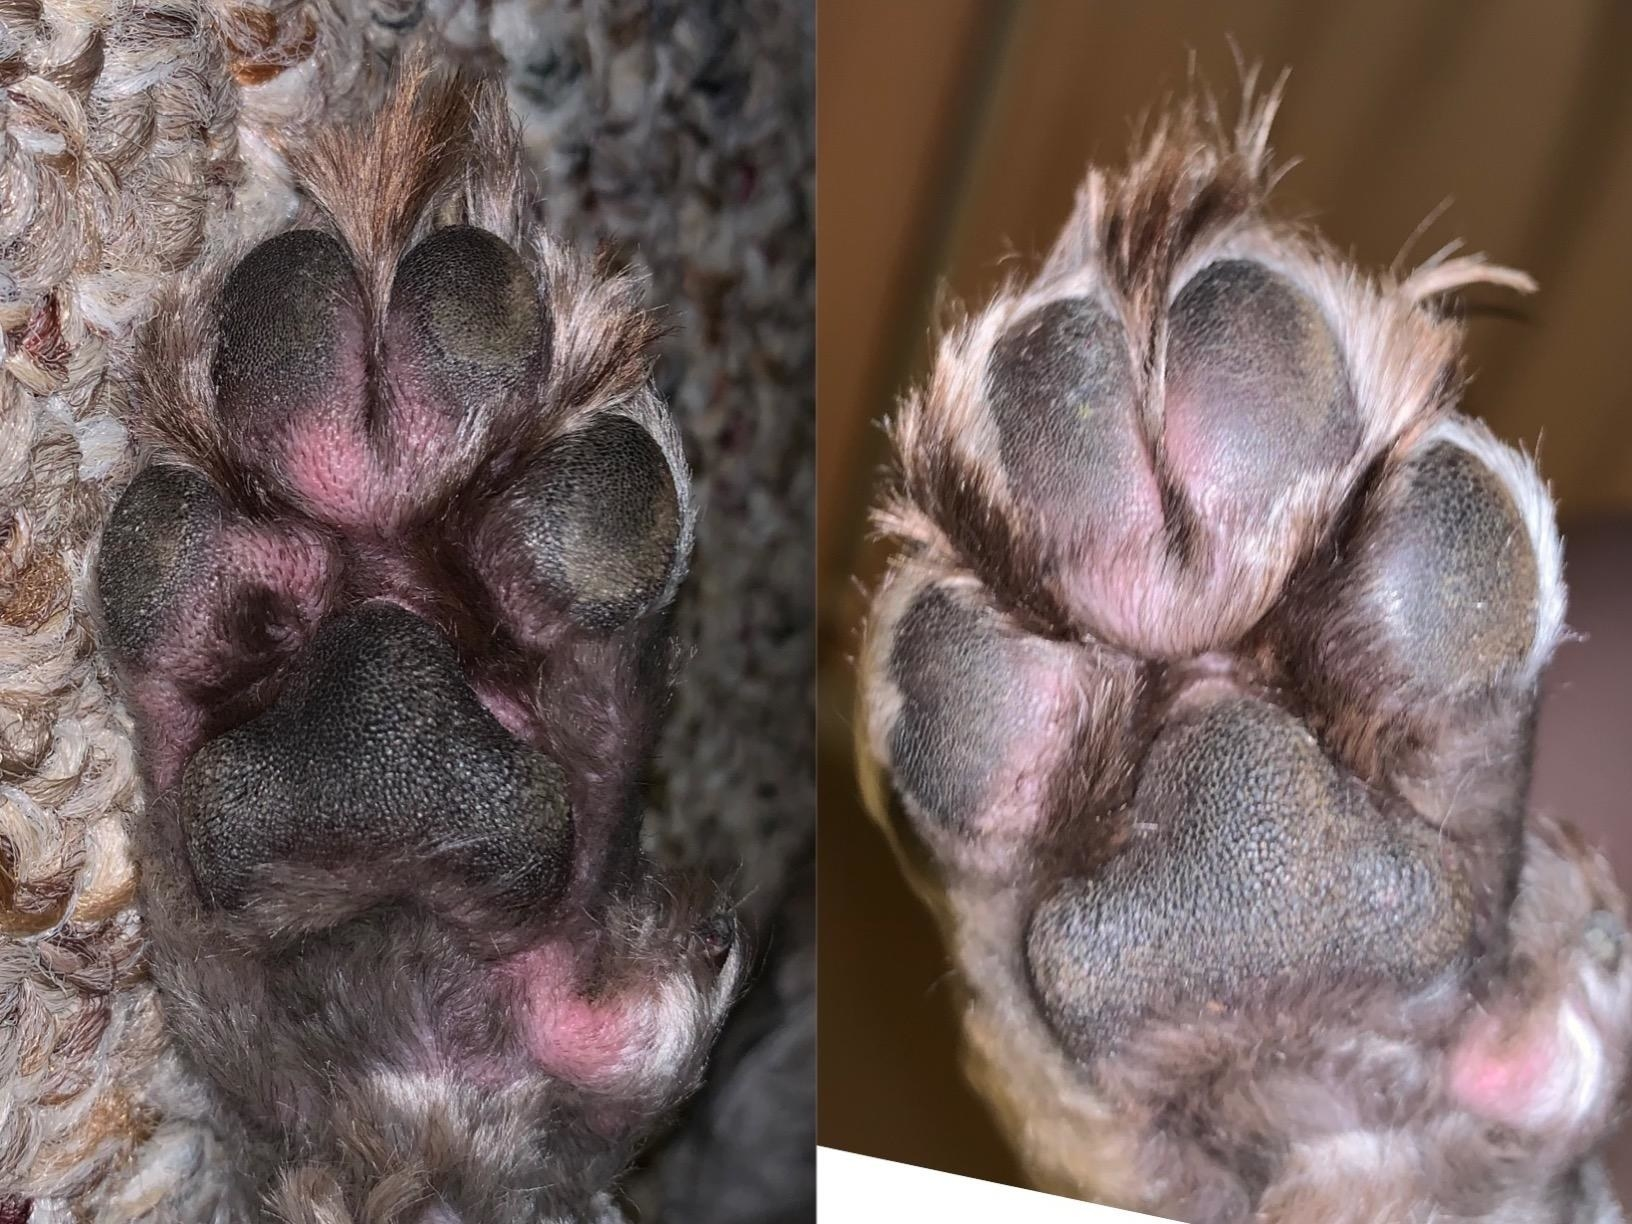 Reviewer before-and-after photo showing results of using antibacterial spray on dog's paw